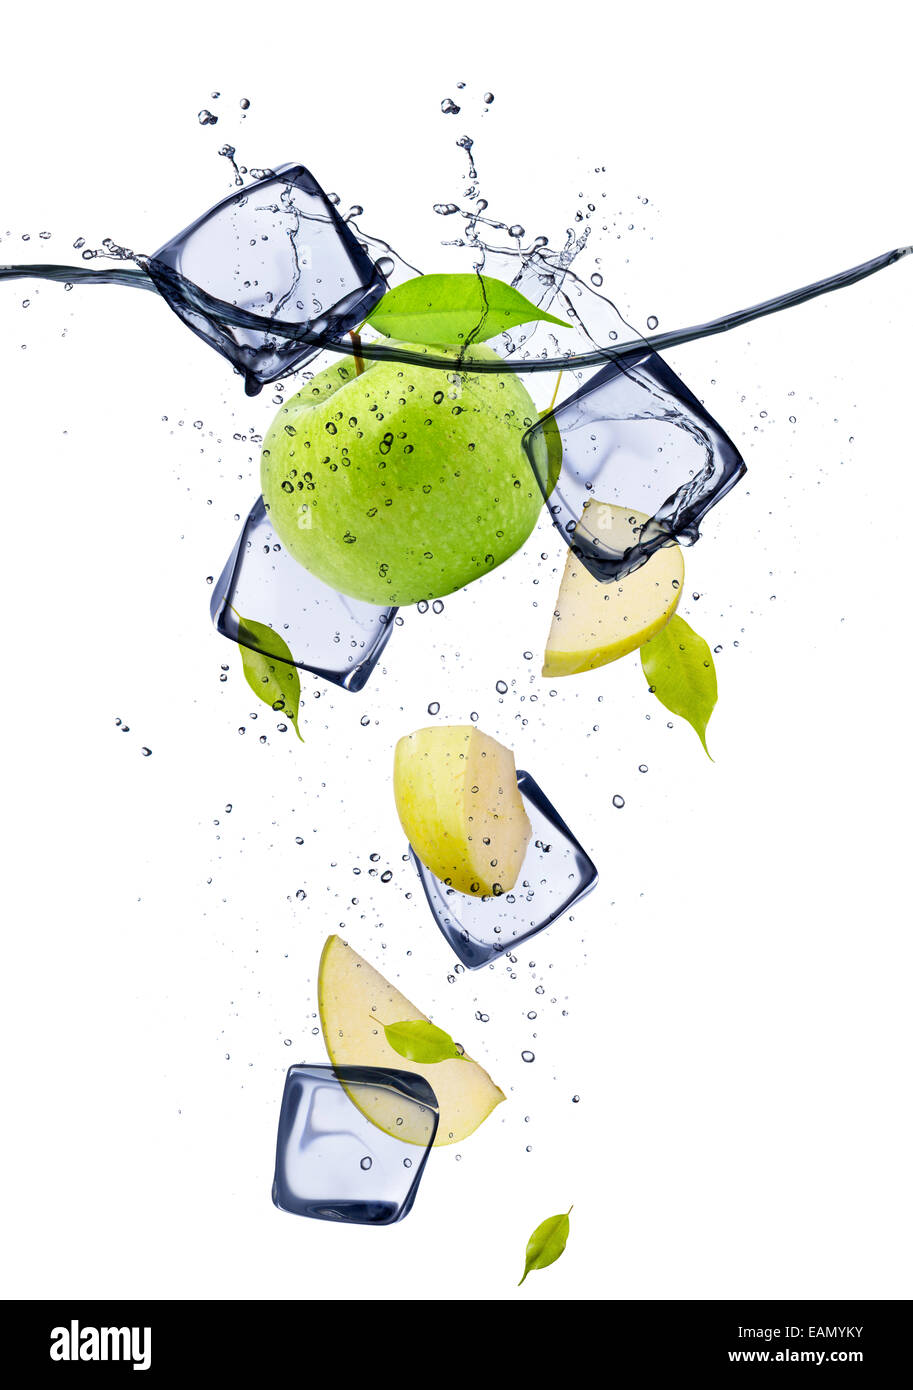 Green apple slices with ice cubes, isolated on white background - Stock Image